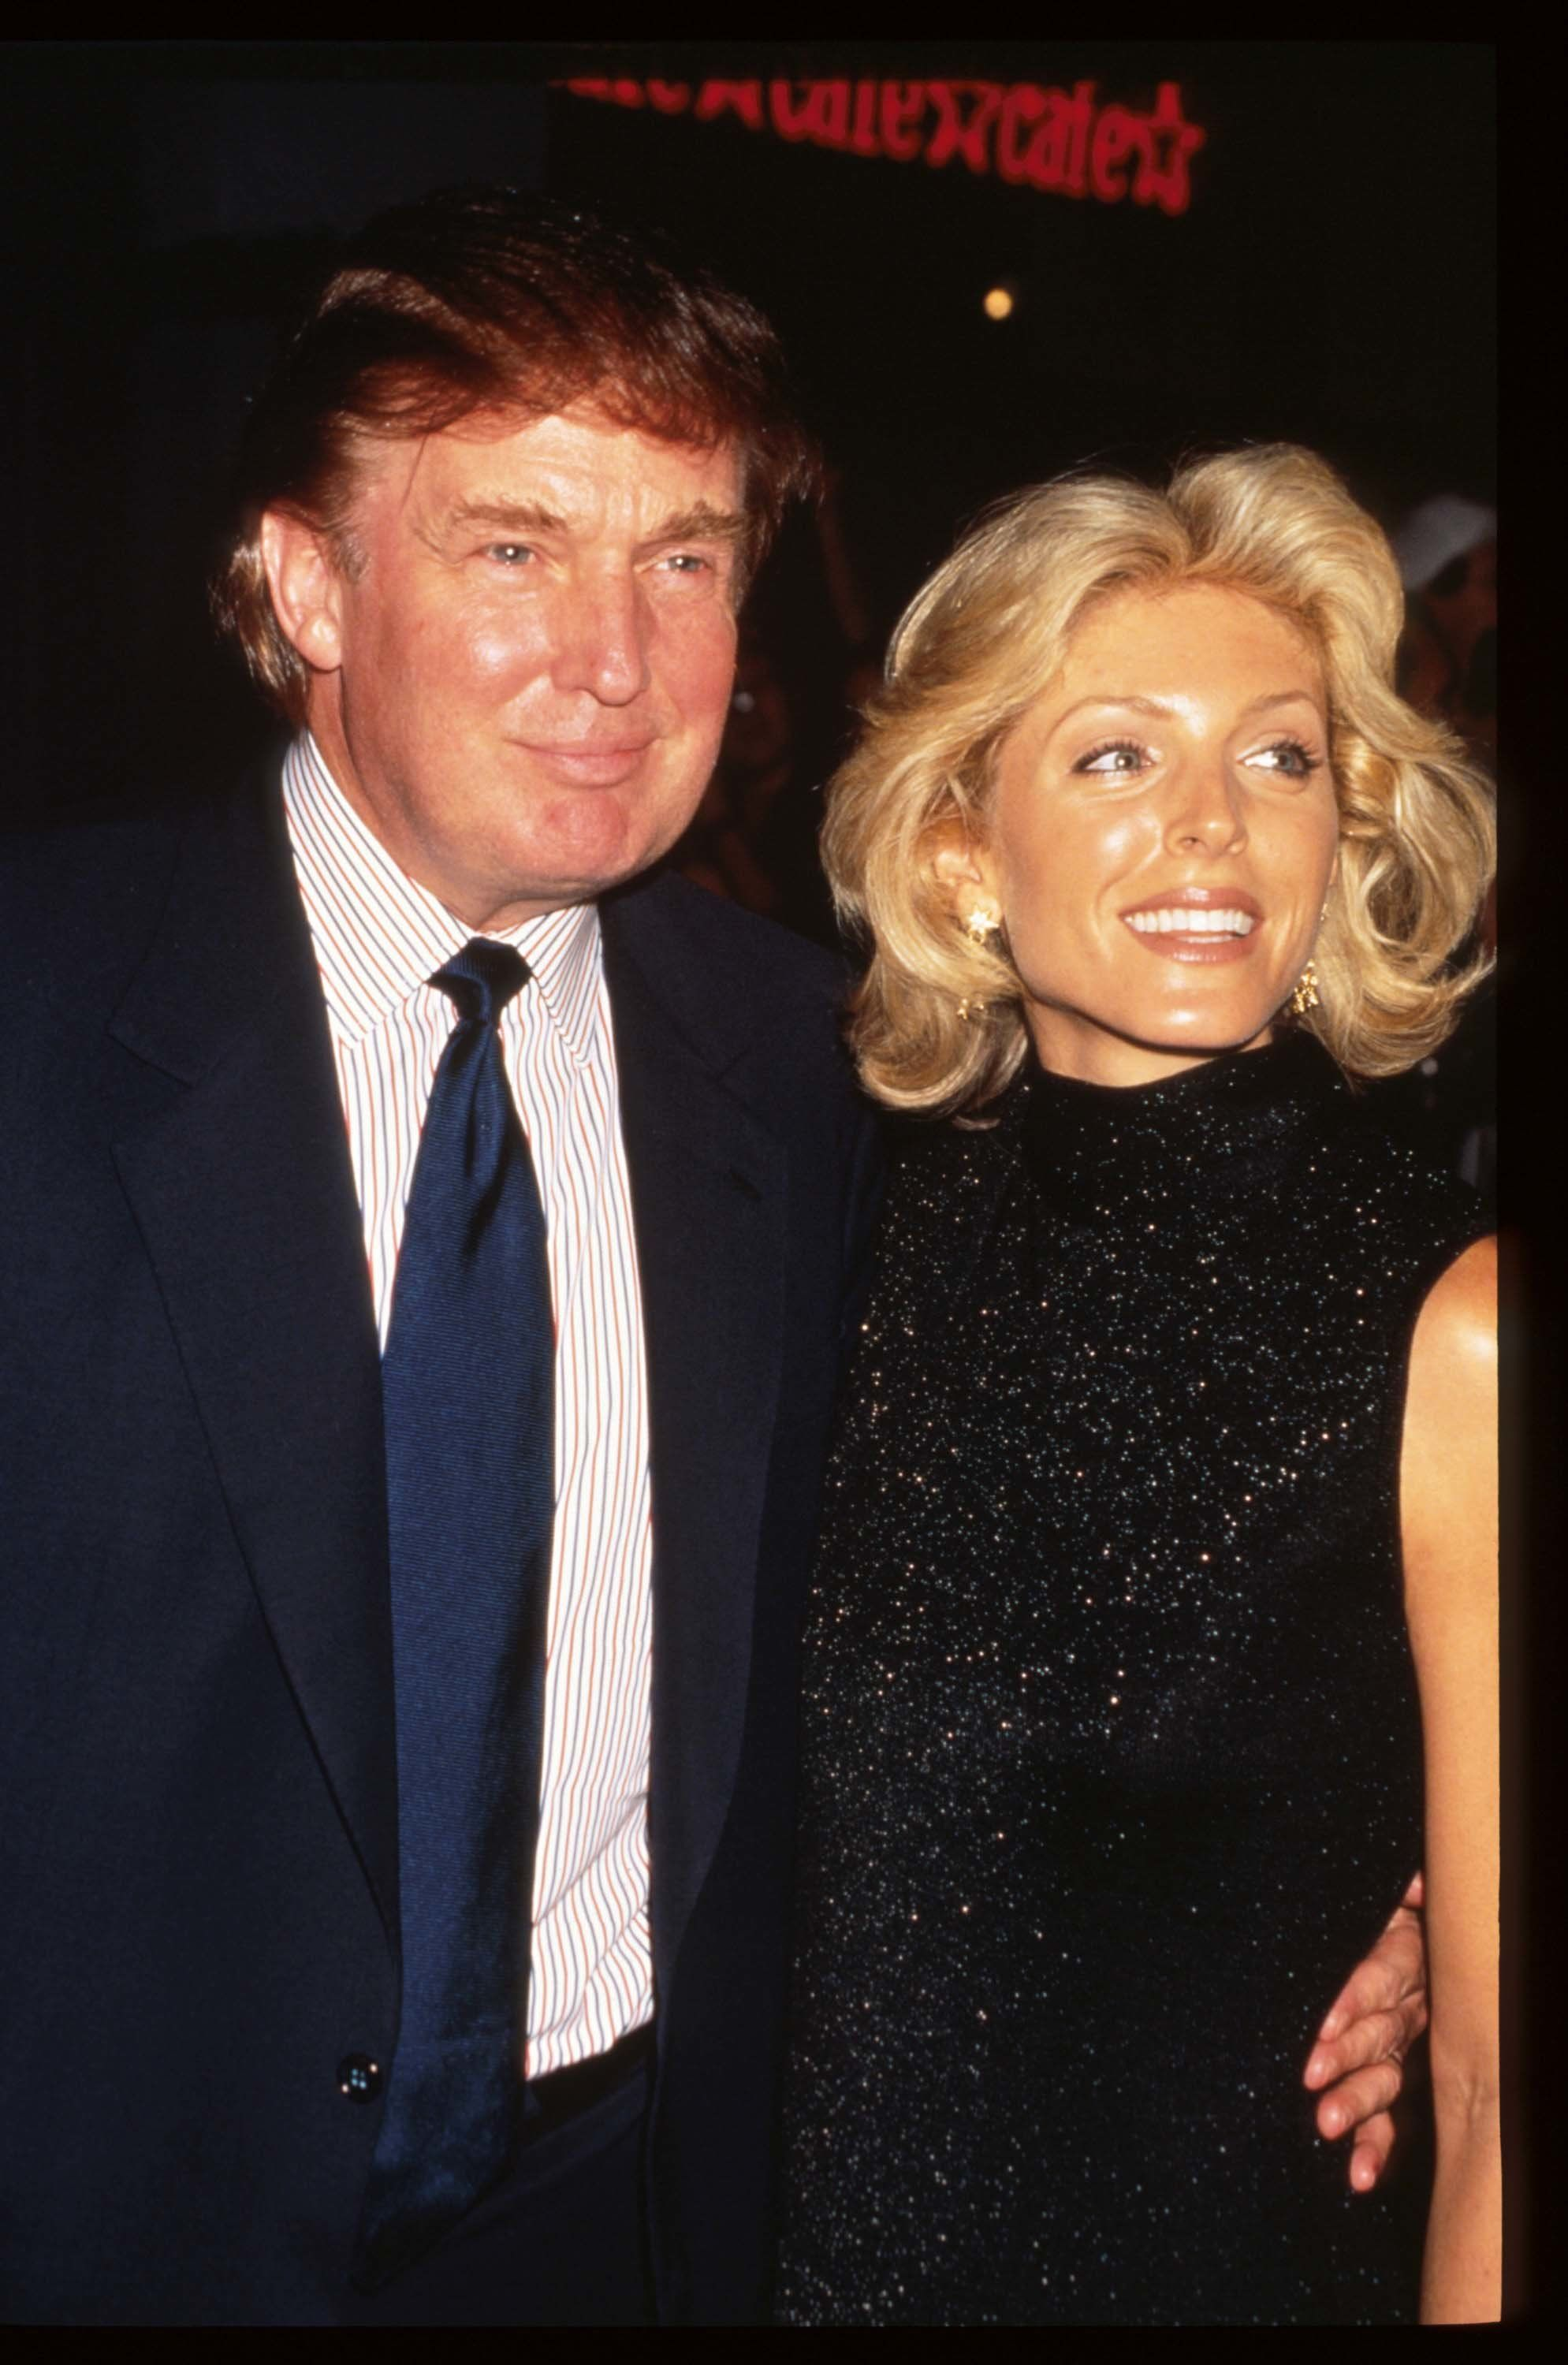 277721 01: Real estate mogul Donald Trump and wife Marla Maples attend the premiere of 'Tin Cup' August 6, 1996 in New York City. Kevin Costner was nominated for a 1997 Golden Globe for Best Performance by an Actor in a Motion Picture for his role as Roy ''Tin Cup'' McAvoy. (Photo by Evan Agostini/Liaison)